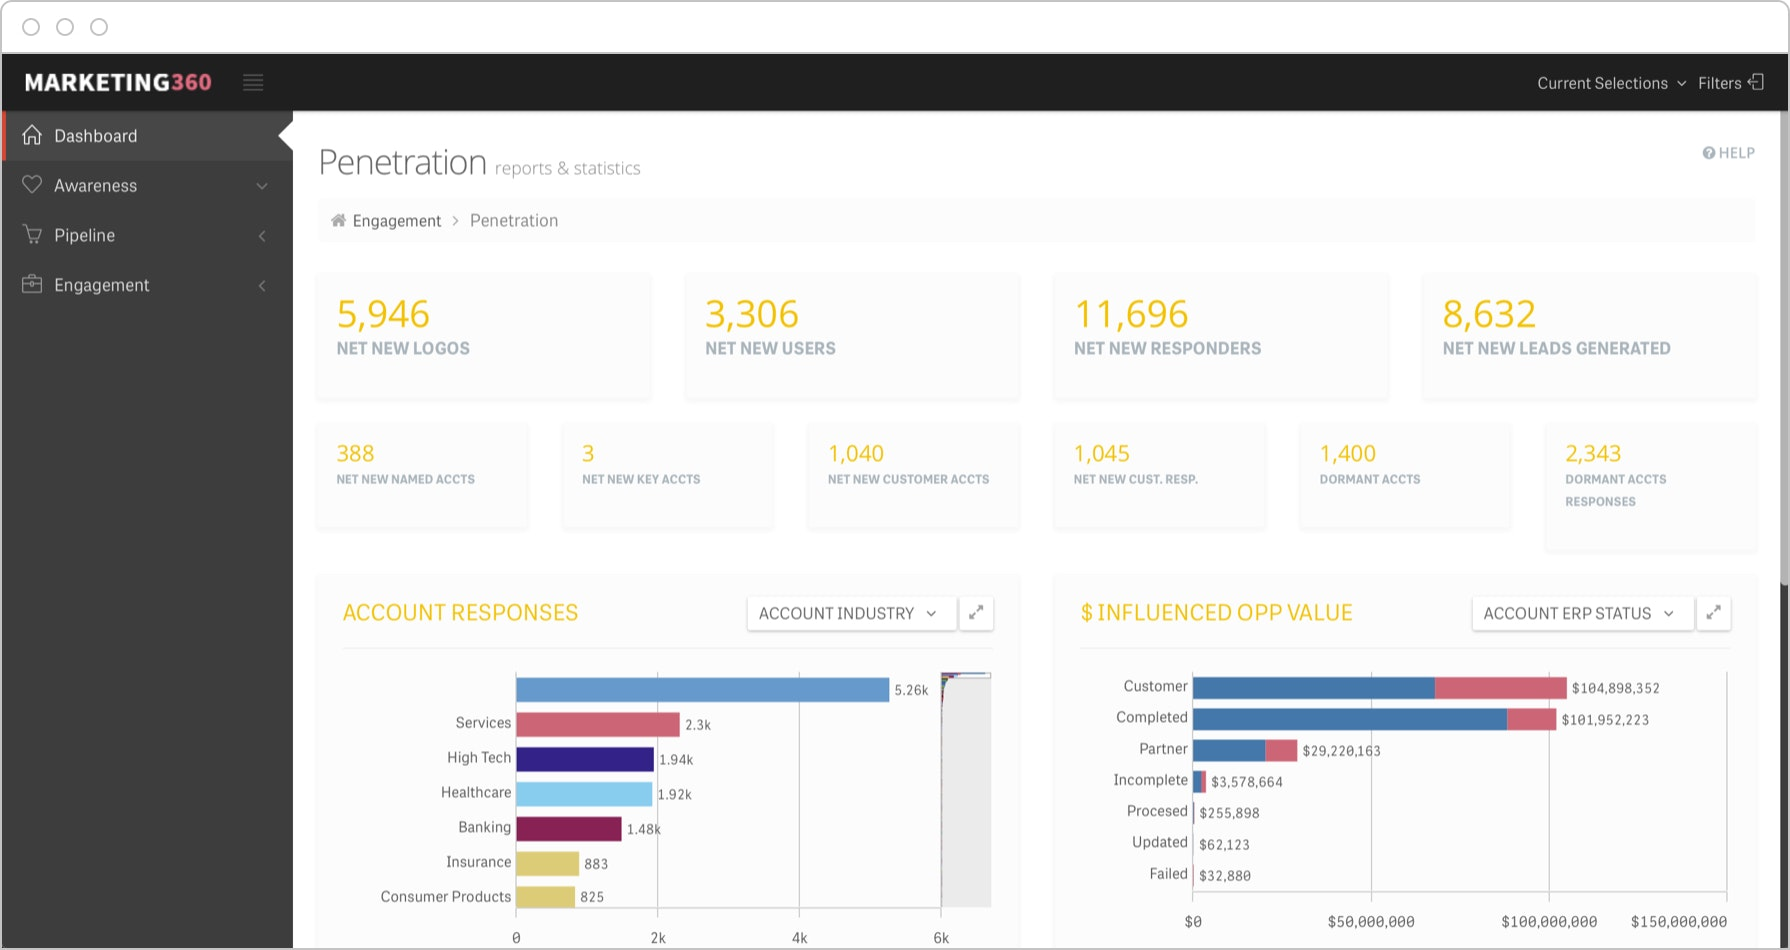 ABM dashboards allow drilling into data to analyze response, conversion and revenue on an account basis.